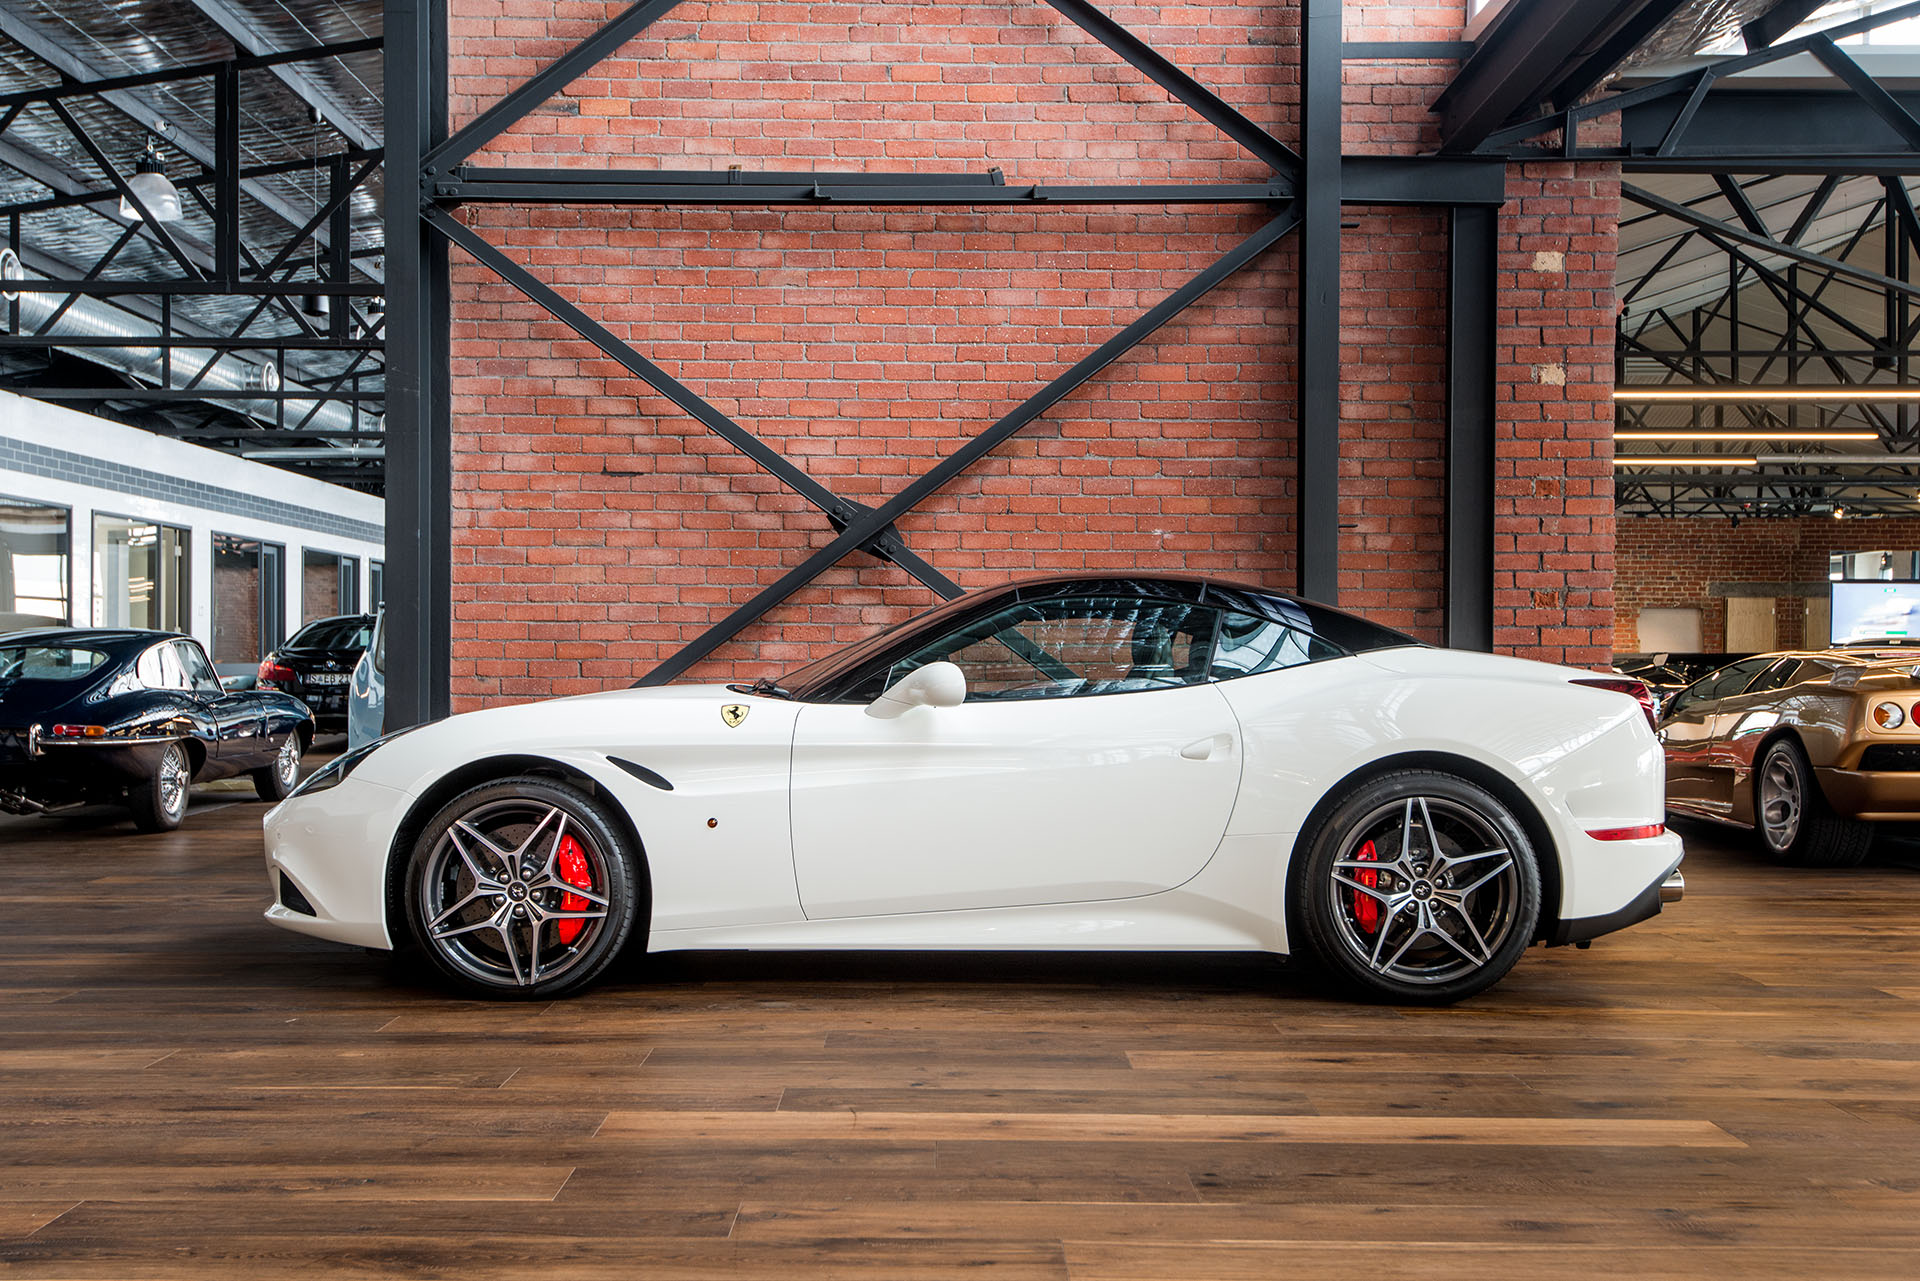 Performance Cars For Sale >> 2015 Ferrari California T - Richmonds - Classic and Prestige Cars - Storage and Sales - Adelaide ...